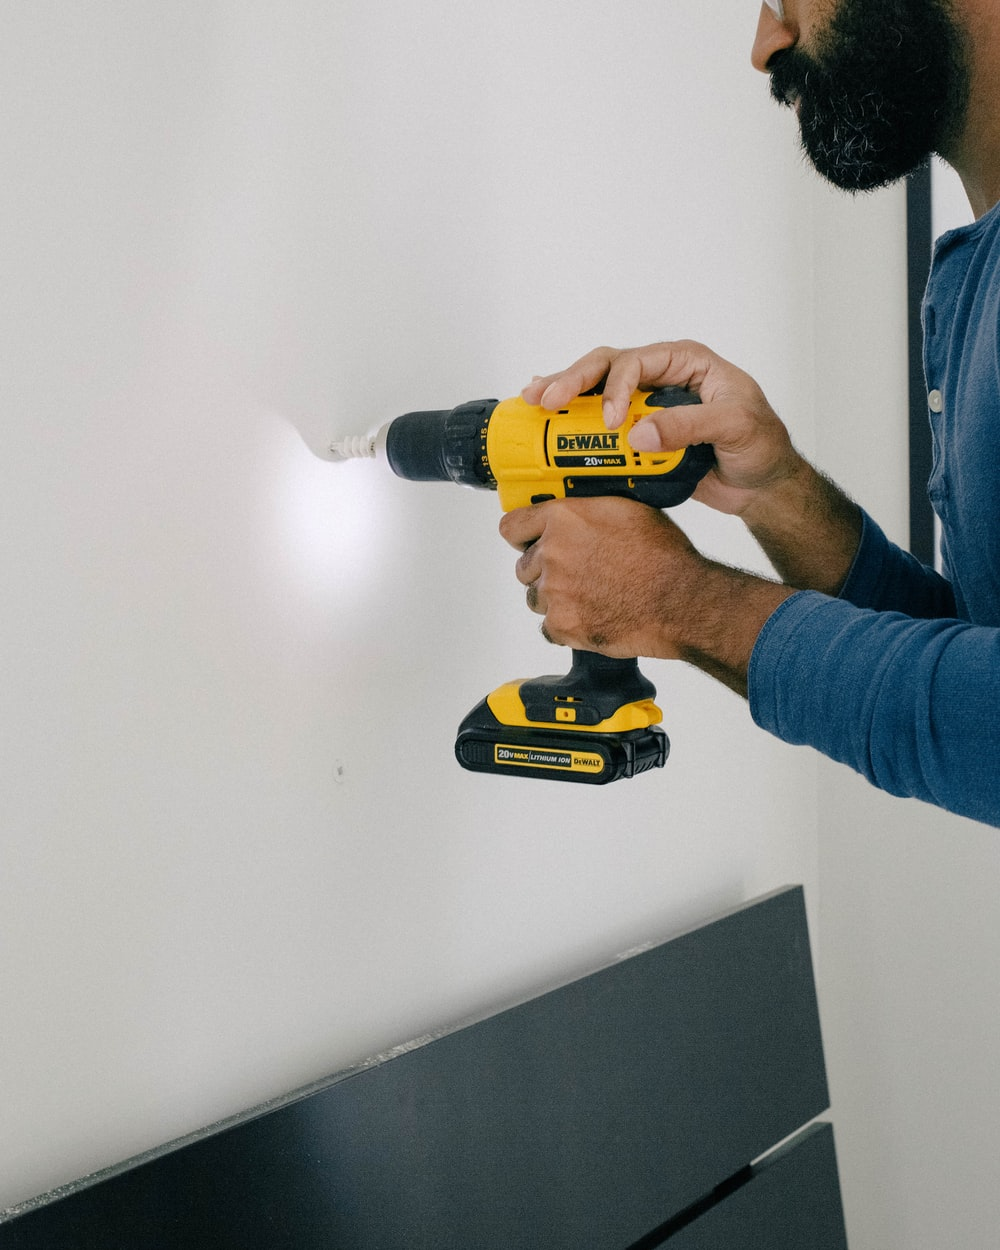 person holding yellow and black cordless hand drill